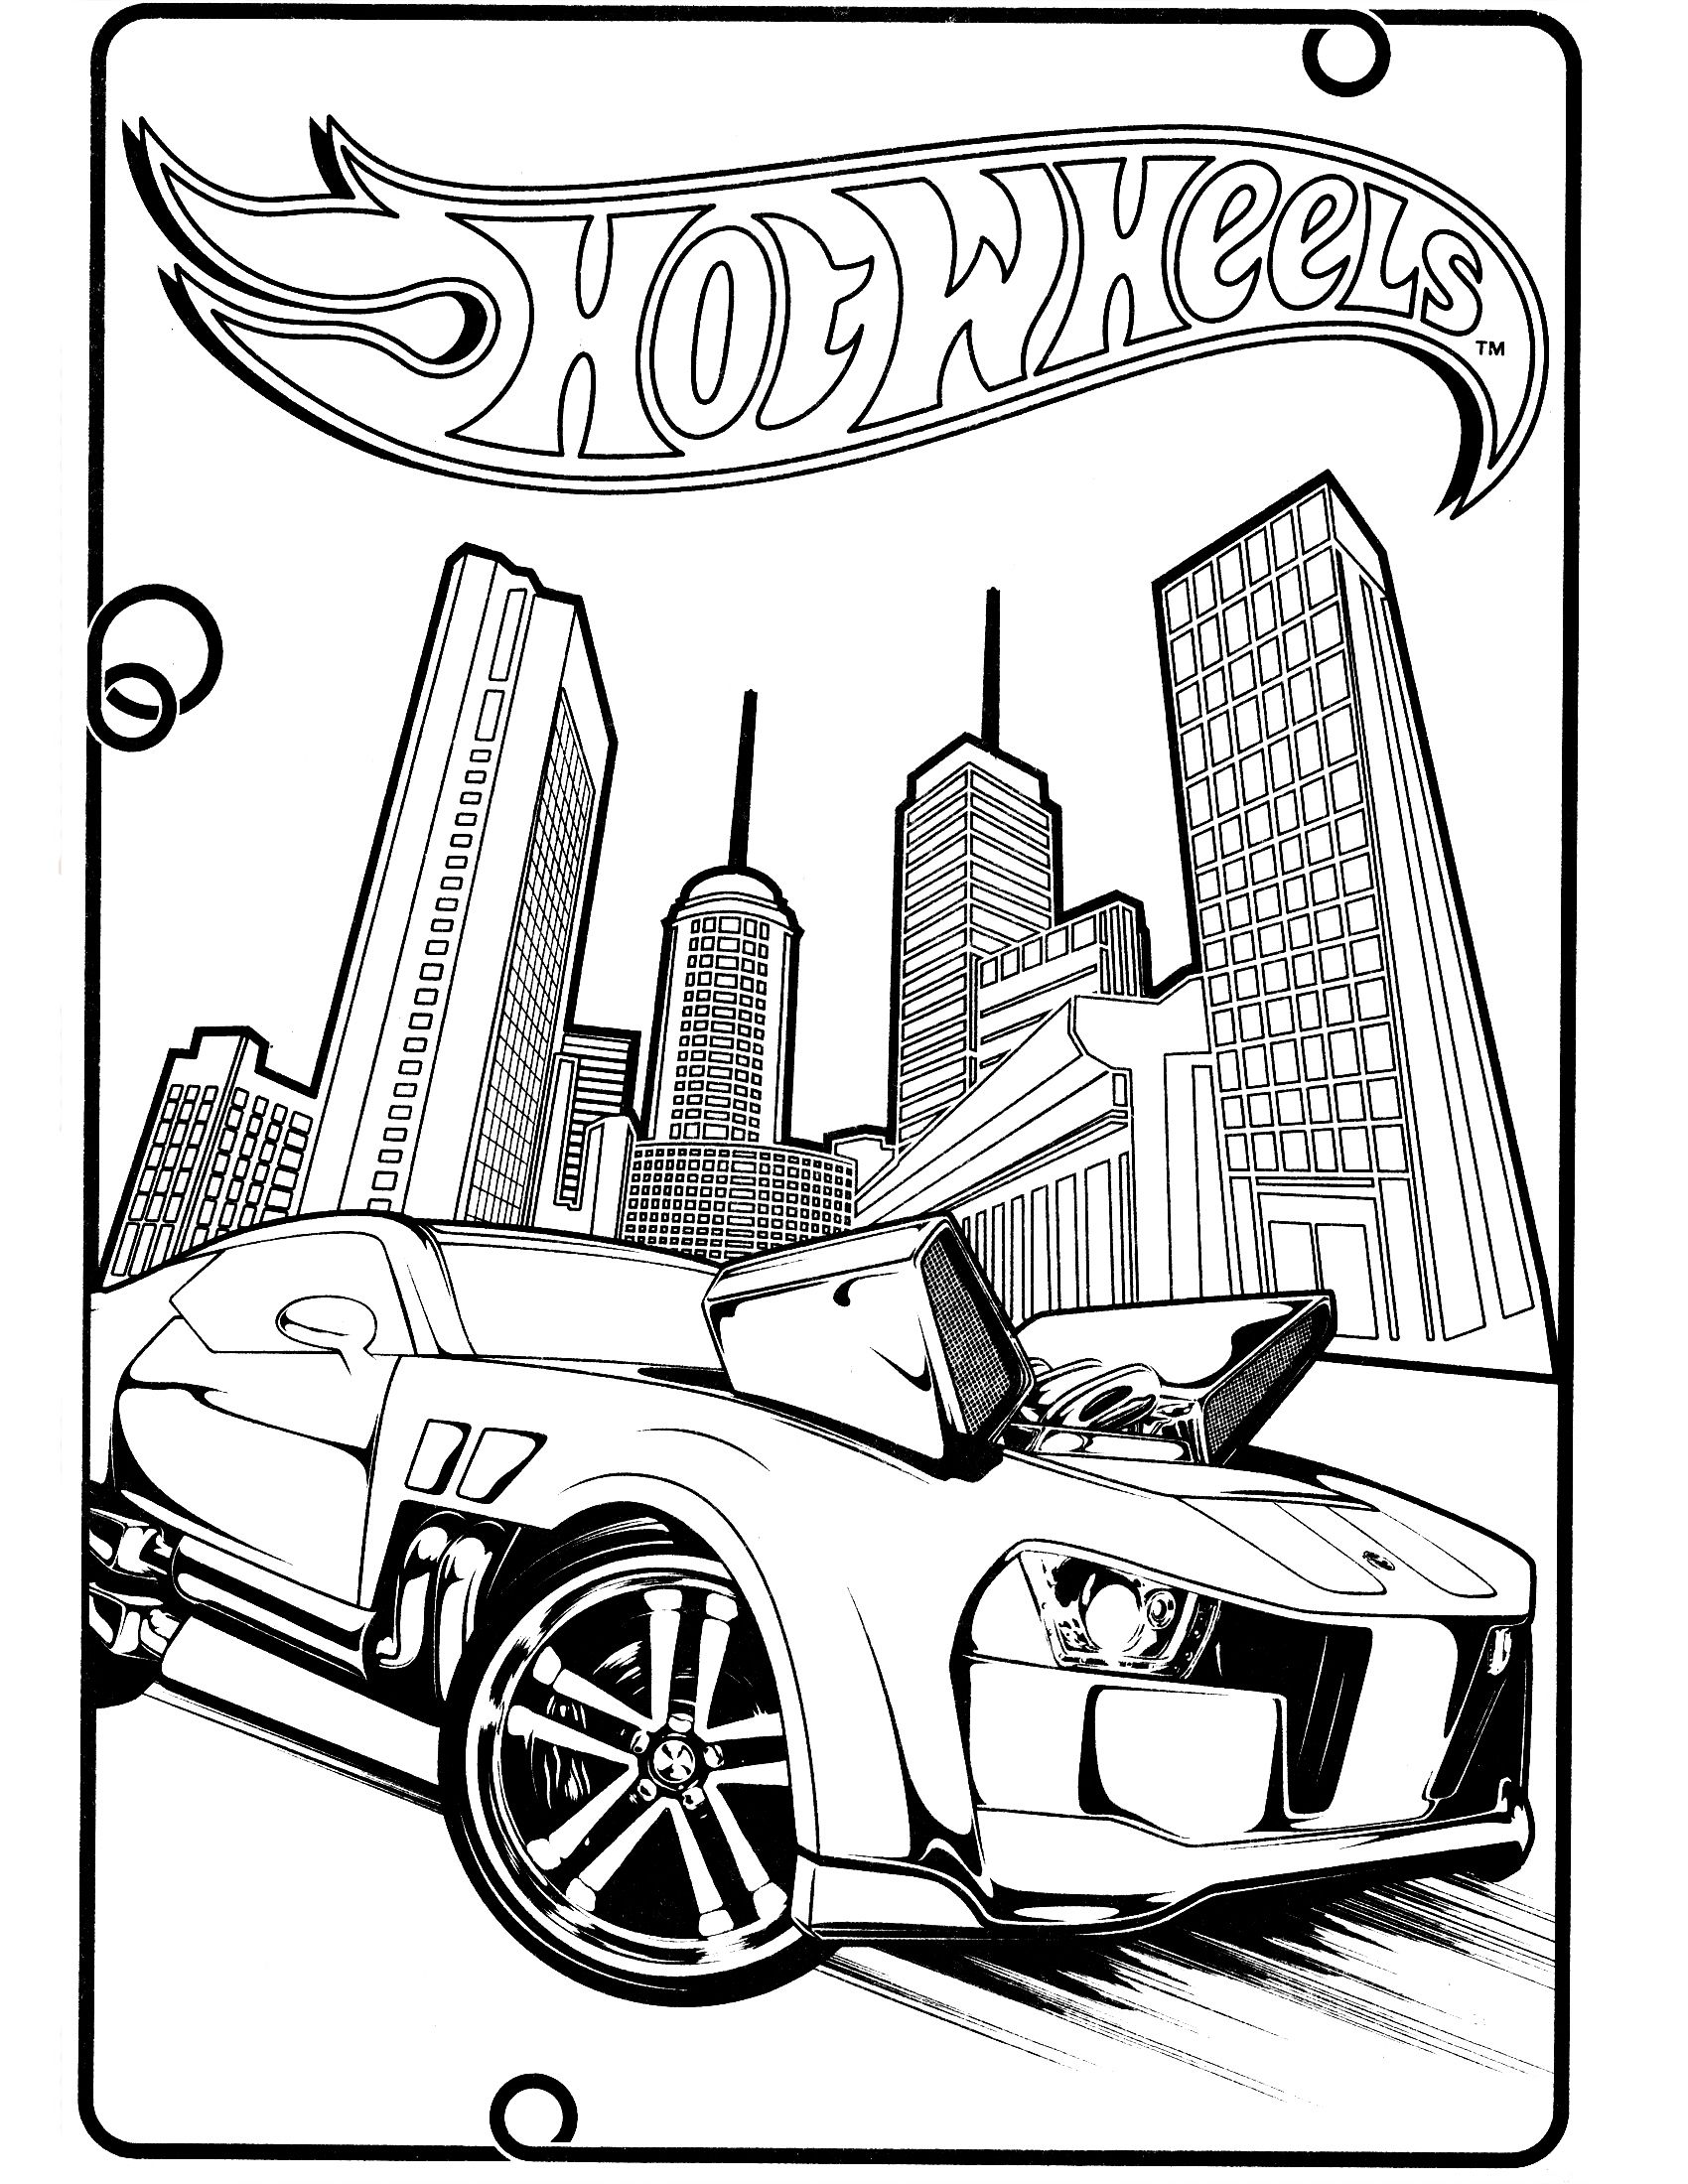 Print Coloring Pages Best Of Free Printable Hot Wheels Coloring Pages For Kids Of 47 L Cars Coloring Pages Monster Truck Coloring Pages Race Car Coloring Pages